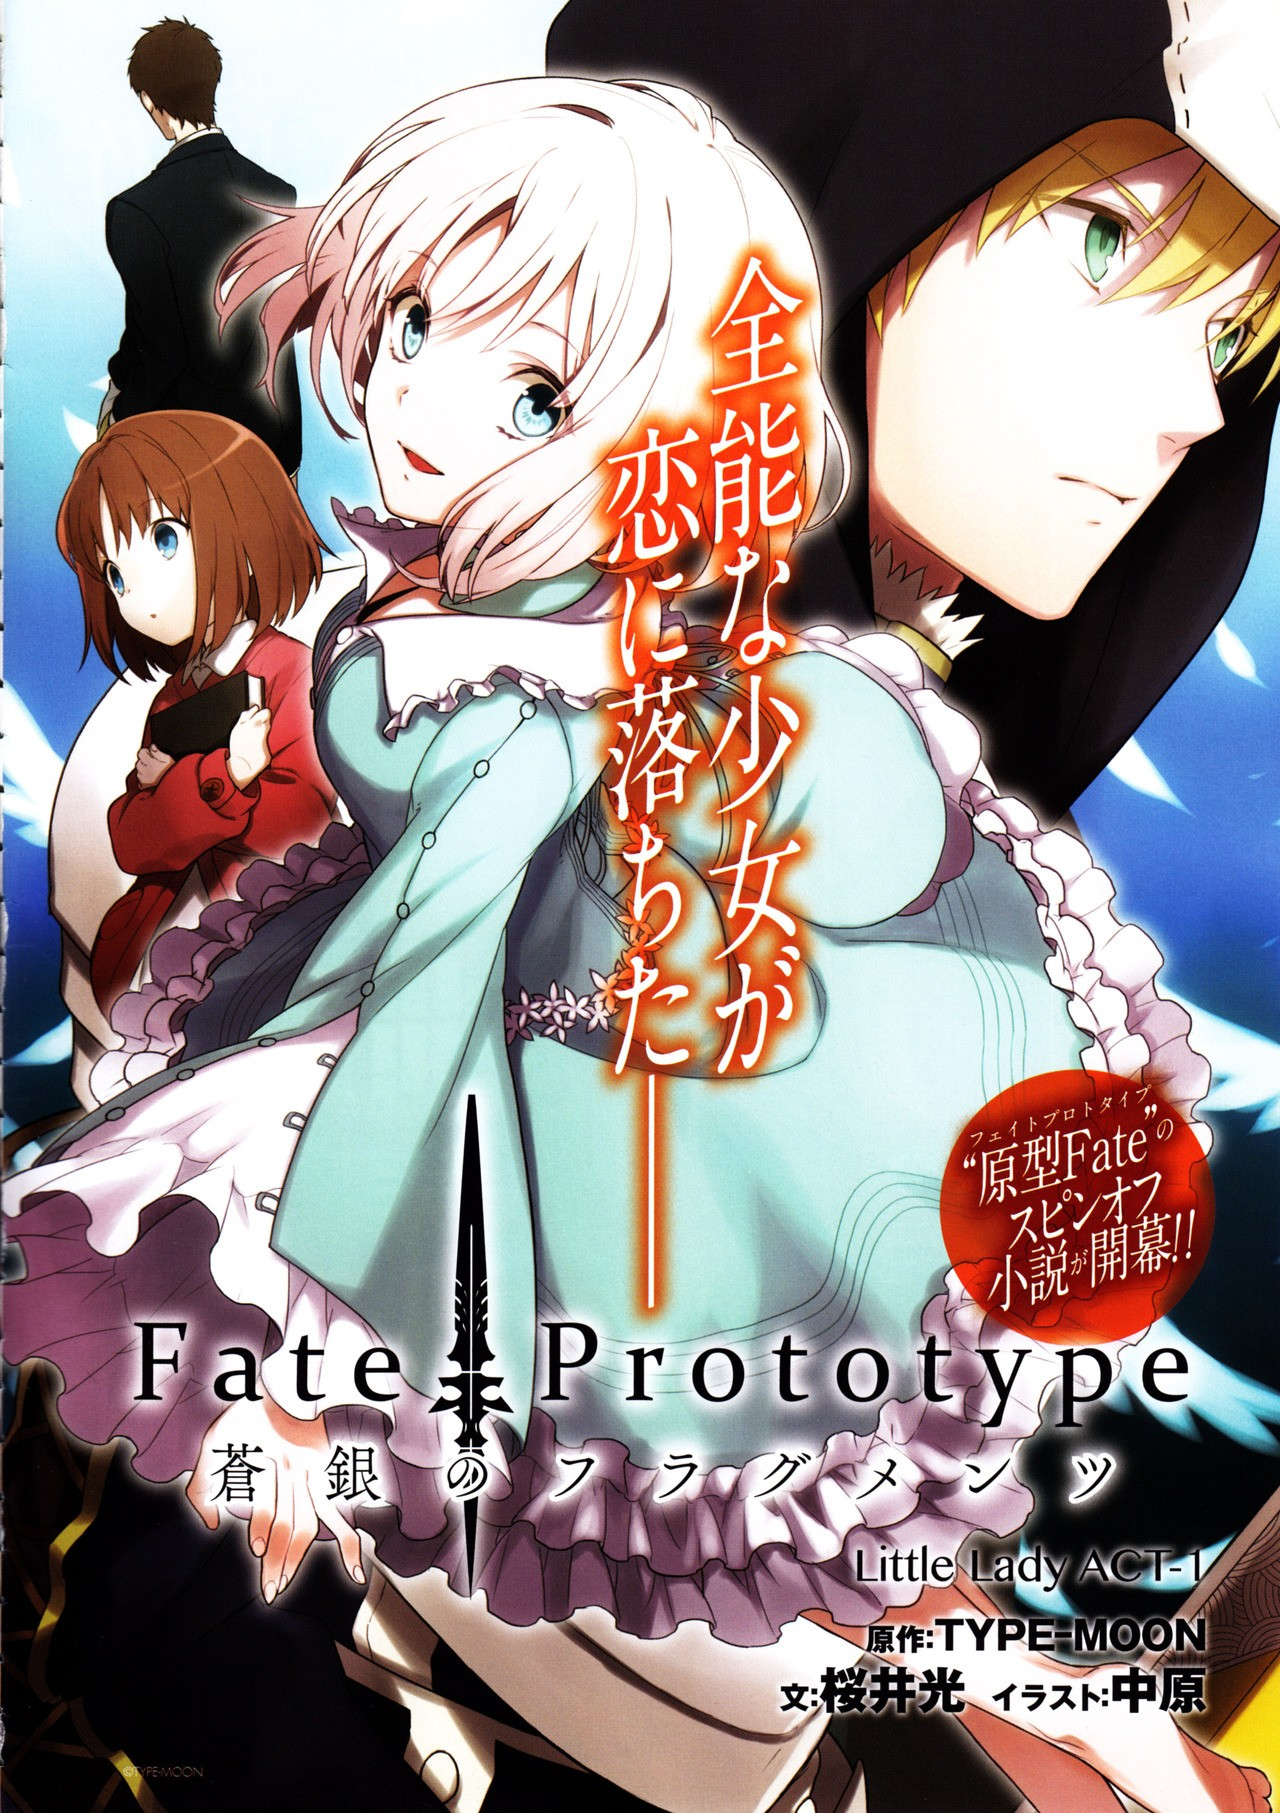 Fate/Prototype 蒼銀のフラグメンツ Fate/Prototype 苍银的碎片